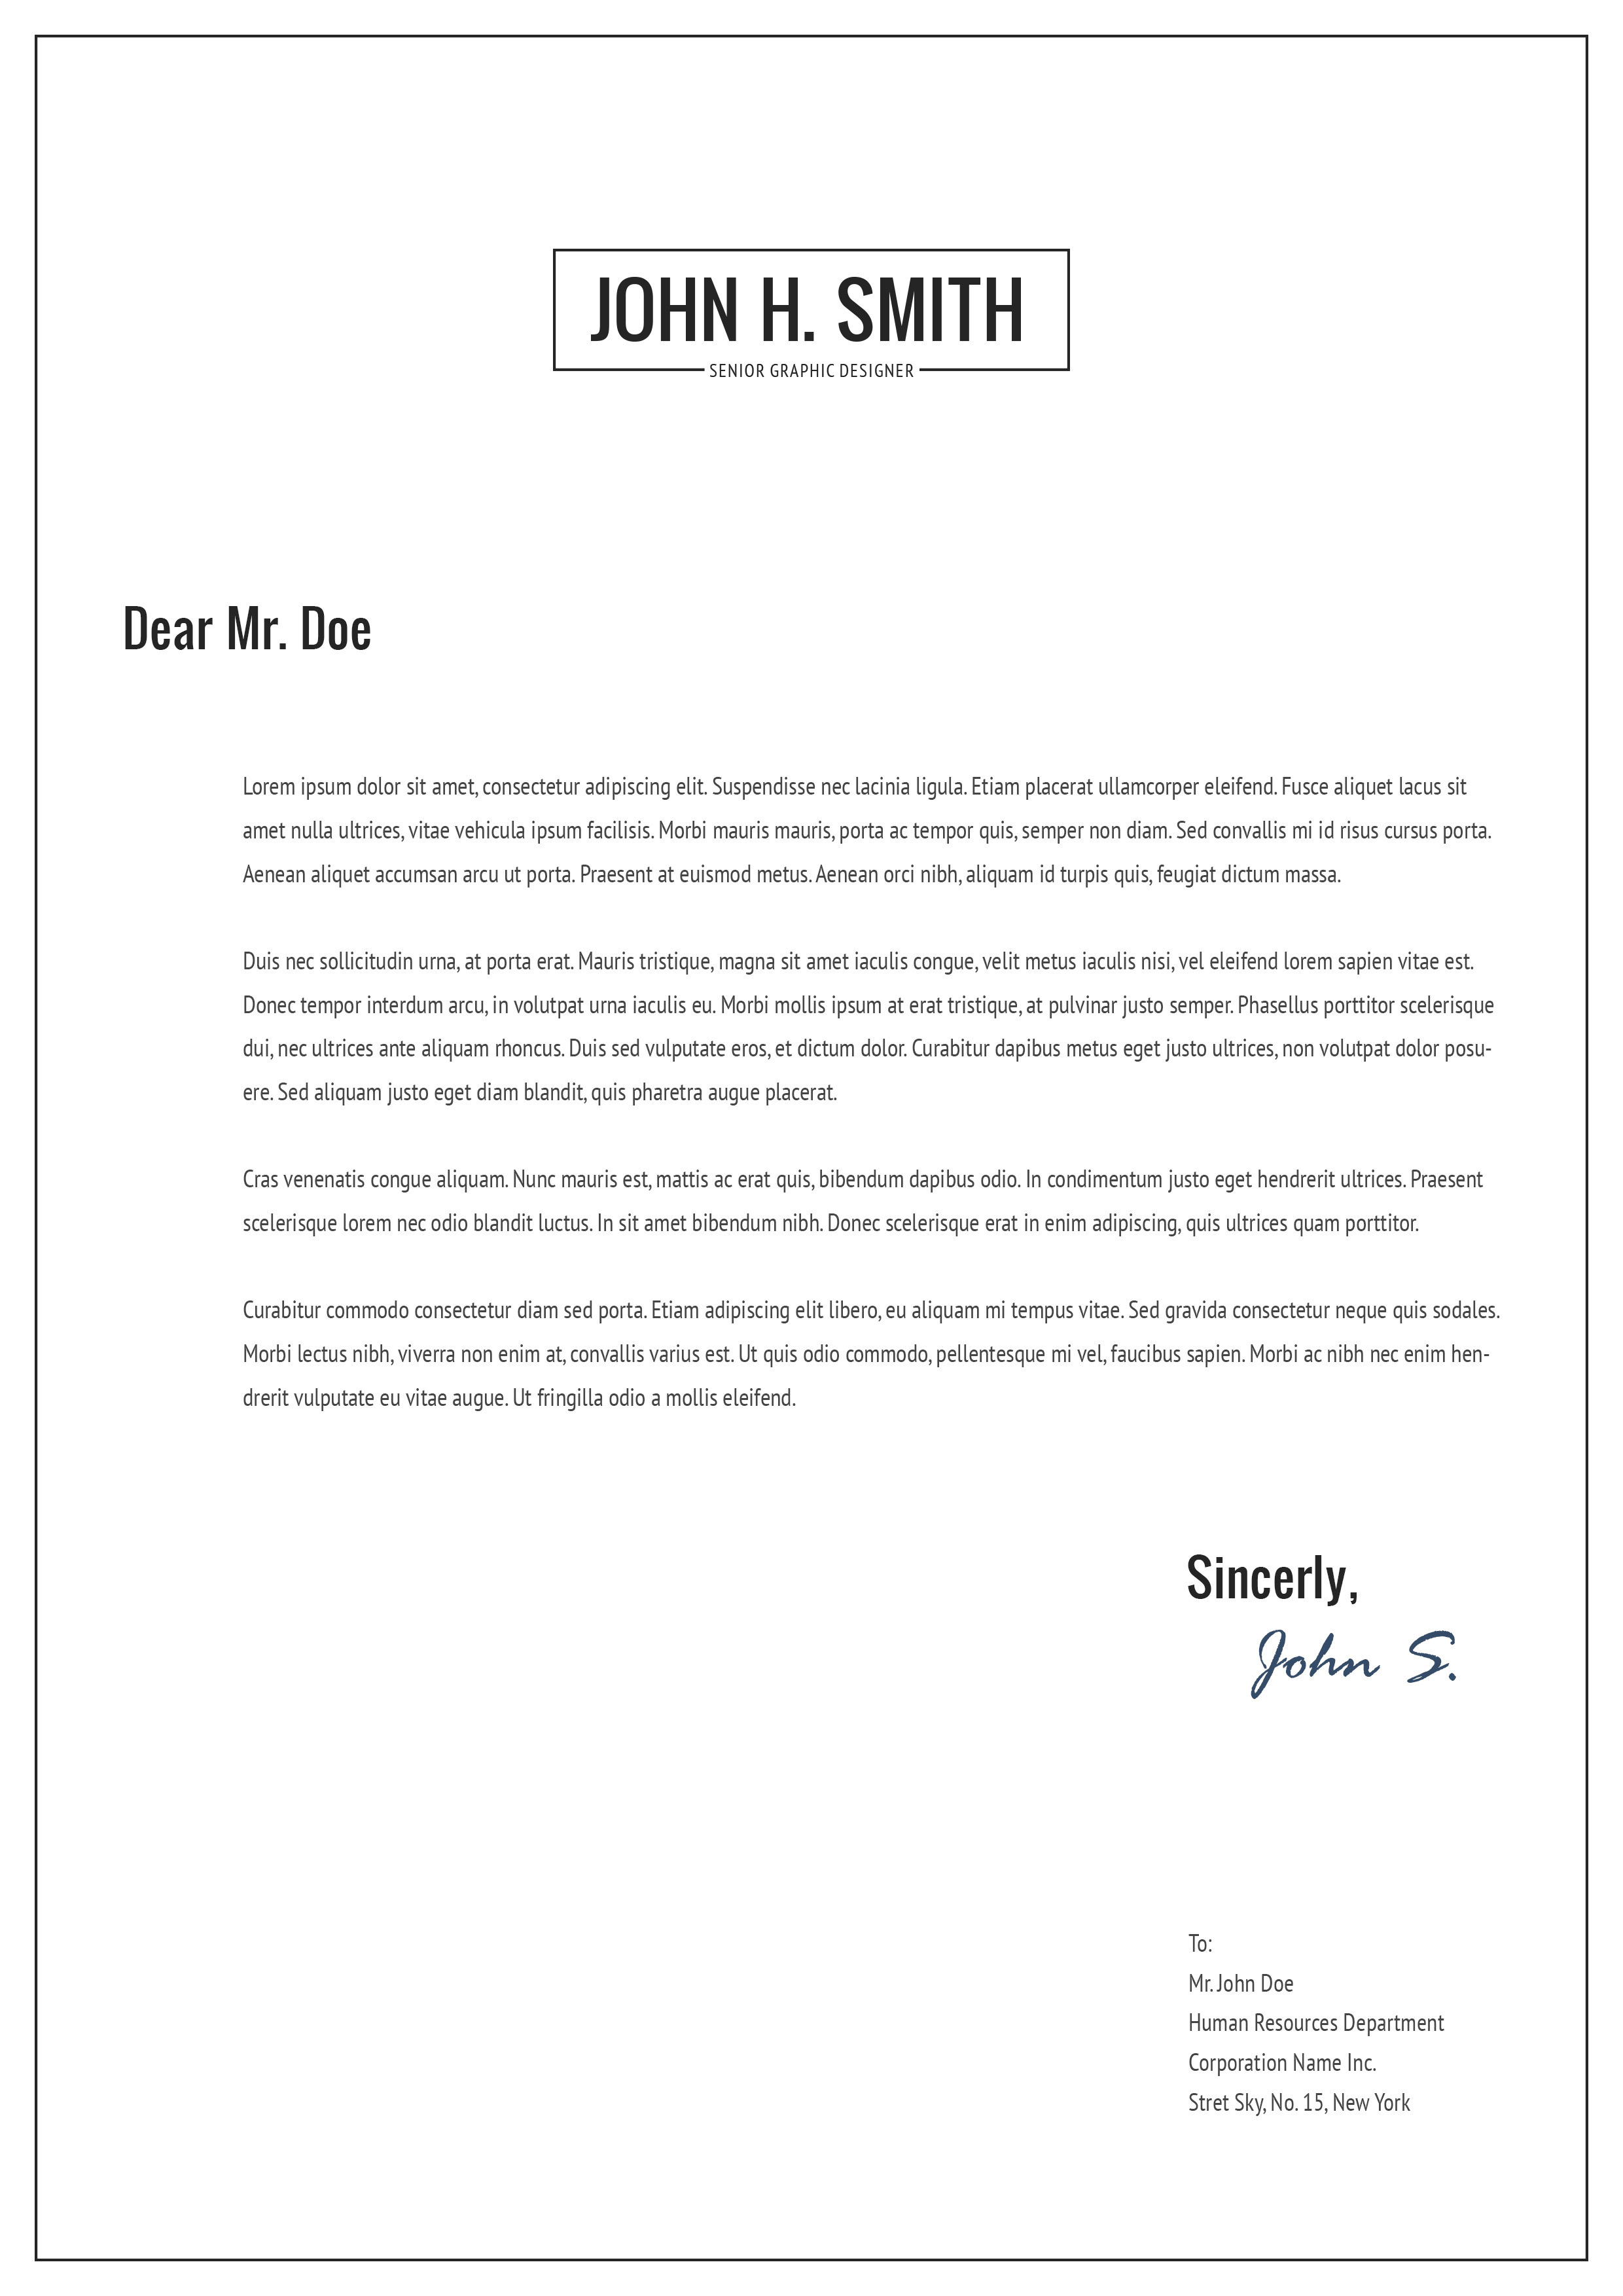 responsive letter A cover letter should represent you and your experiences in an authentic way this includes writing style and formatting however, this outline may give you a place.